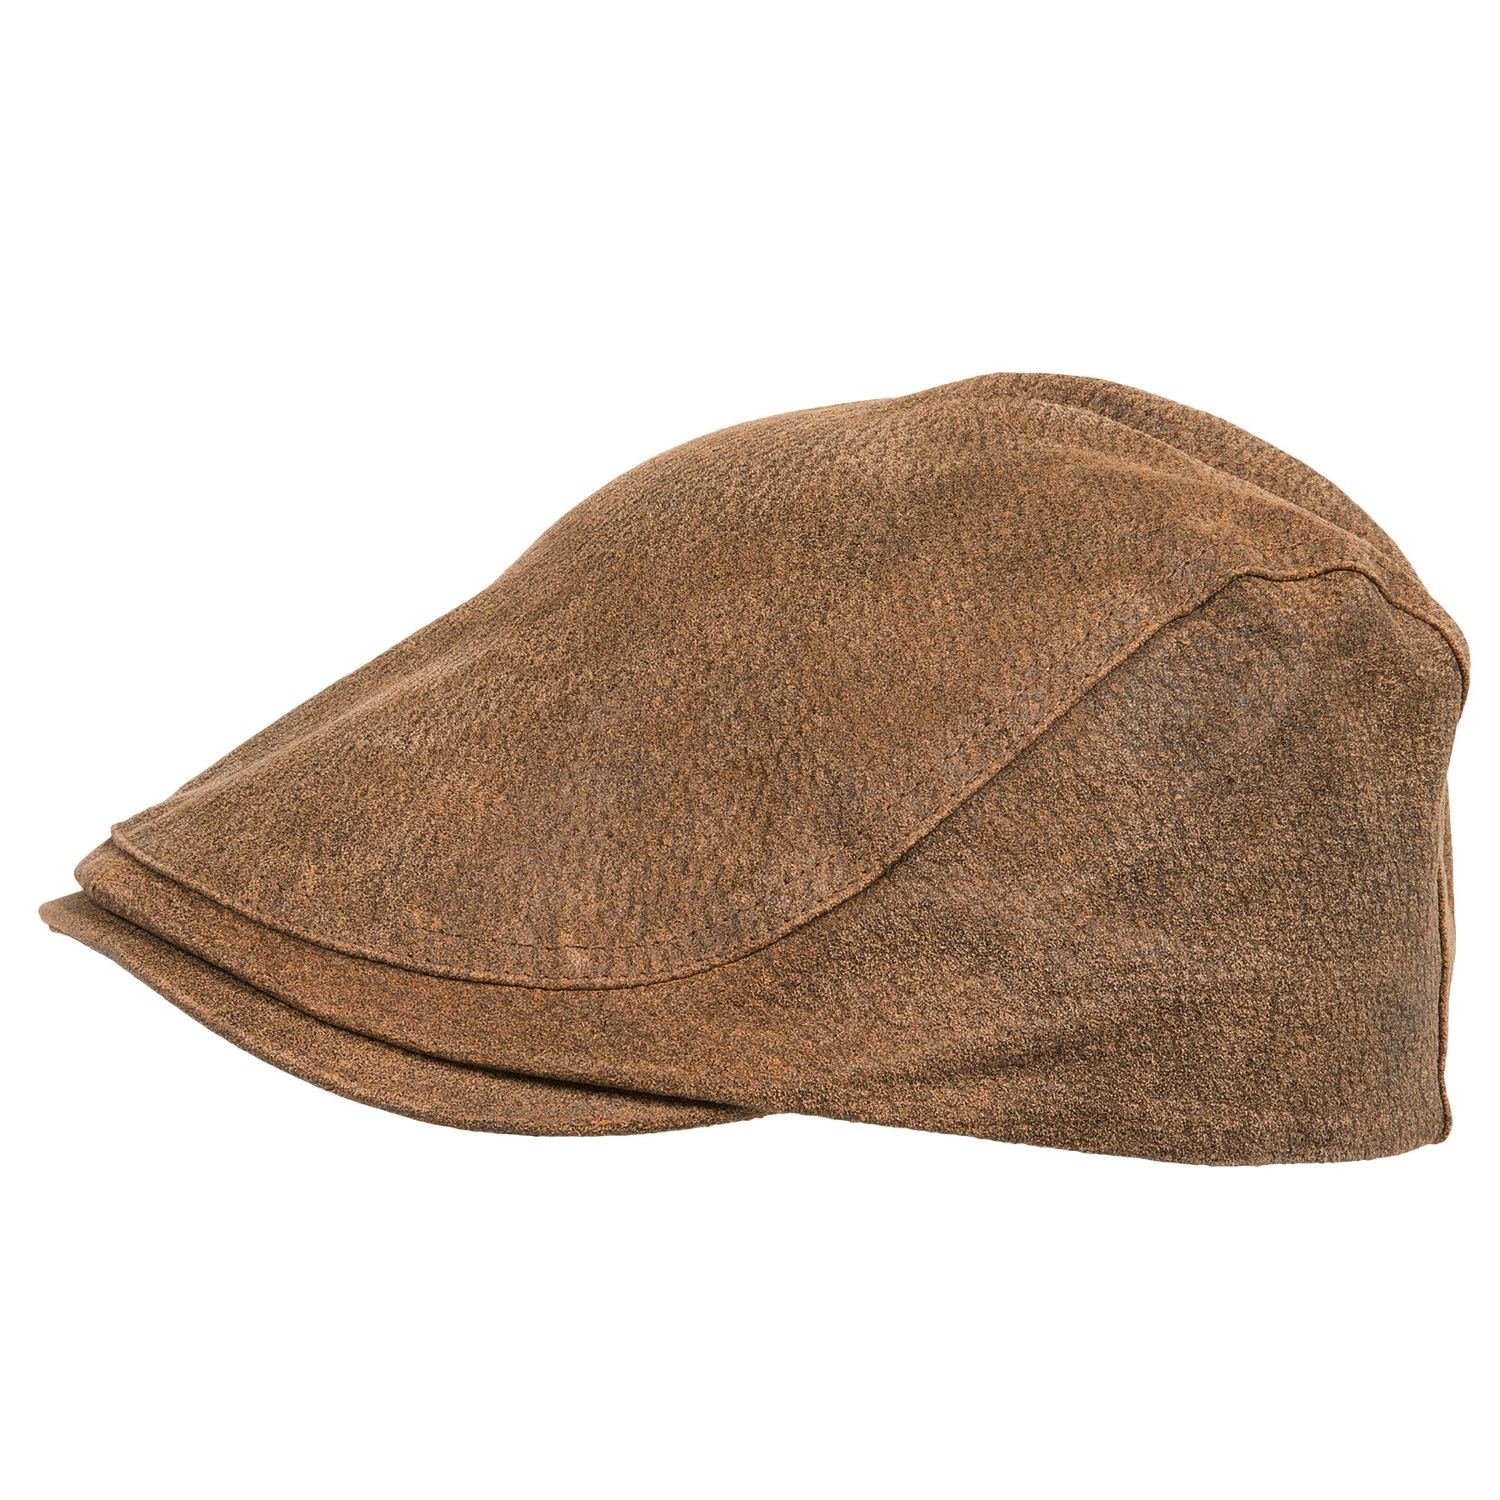 Hats, caps & berets from around the world. Shop our growing selection of iconic brands, styles and colors. + Reviews. Click or Call